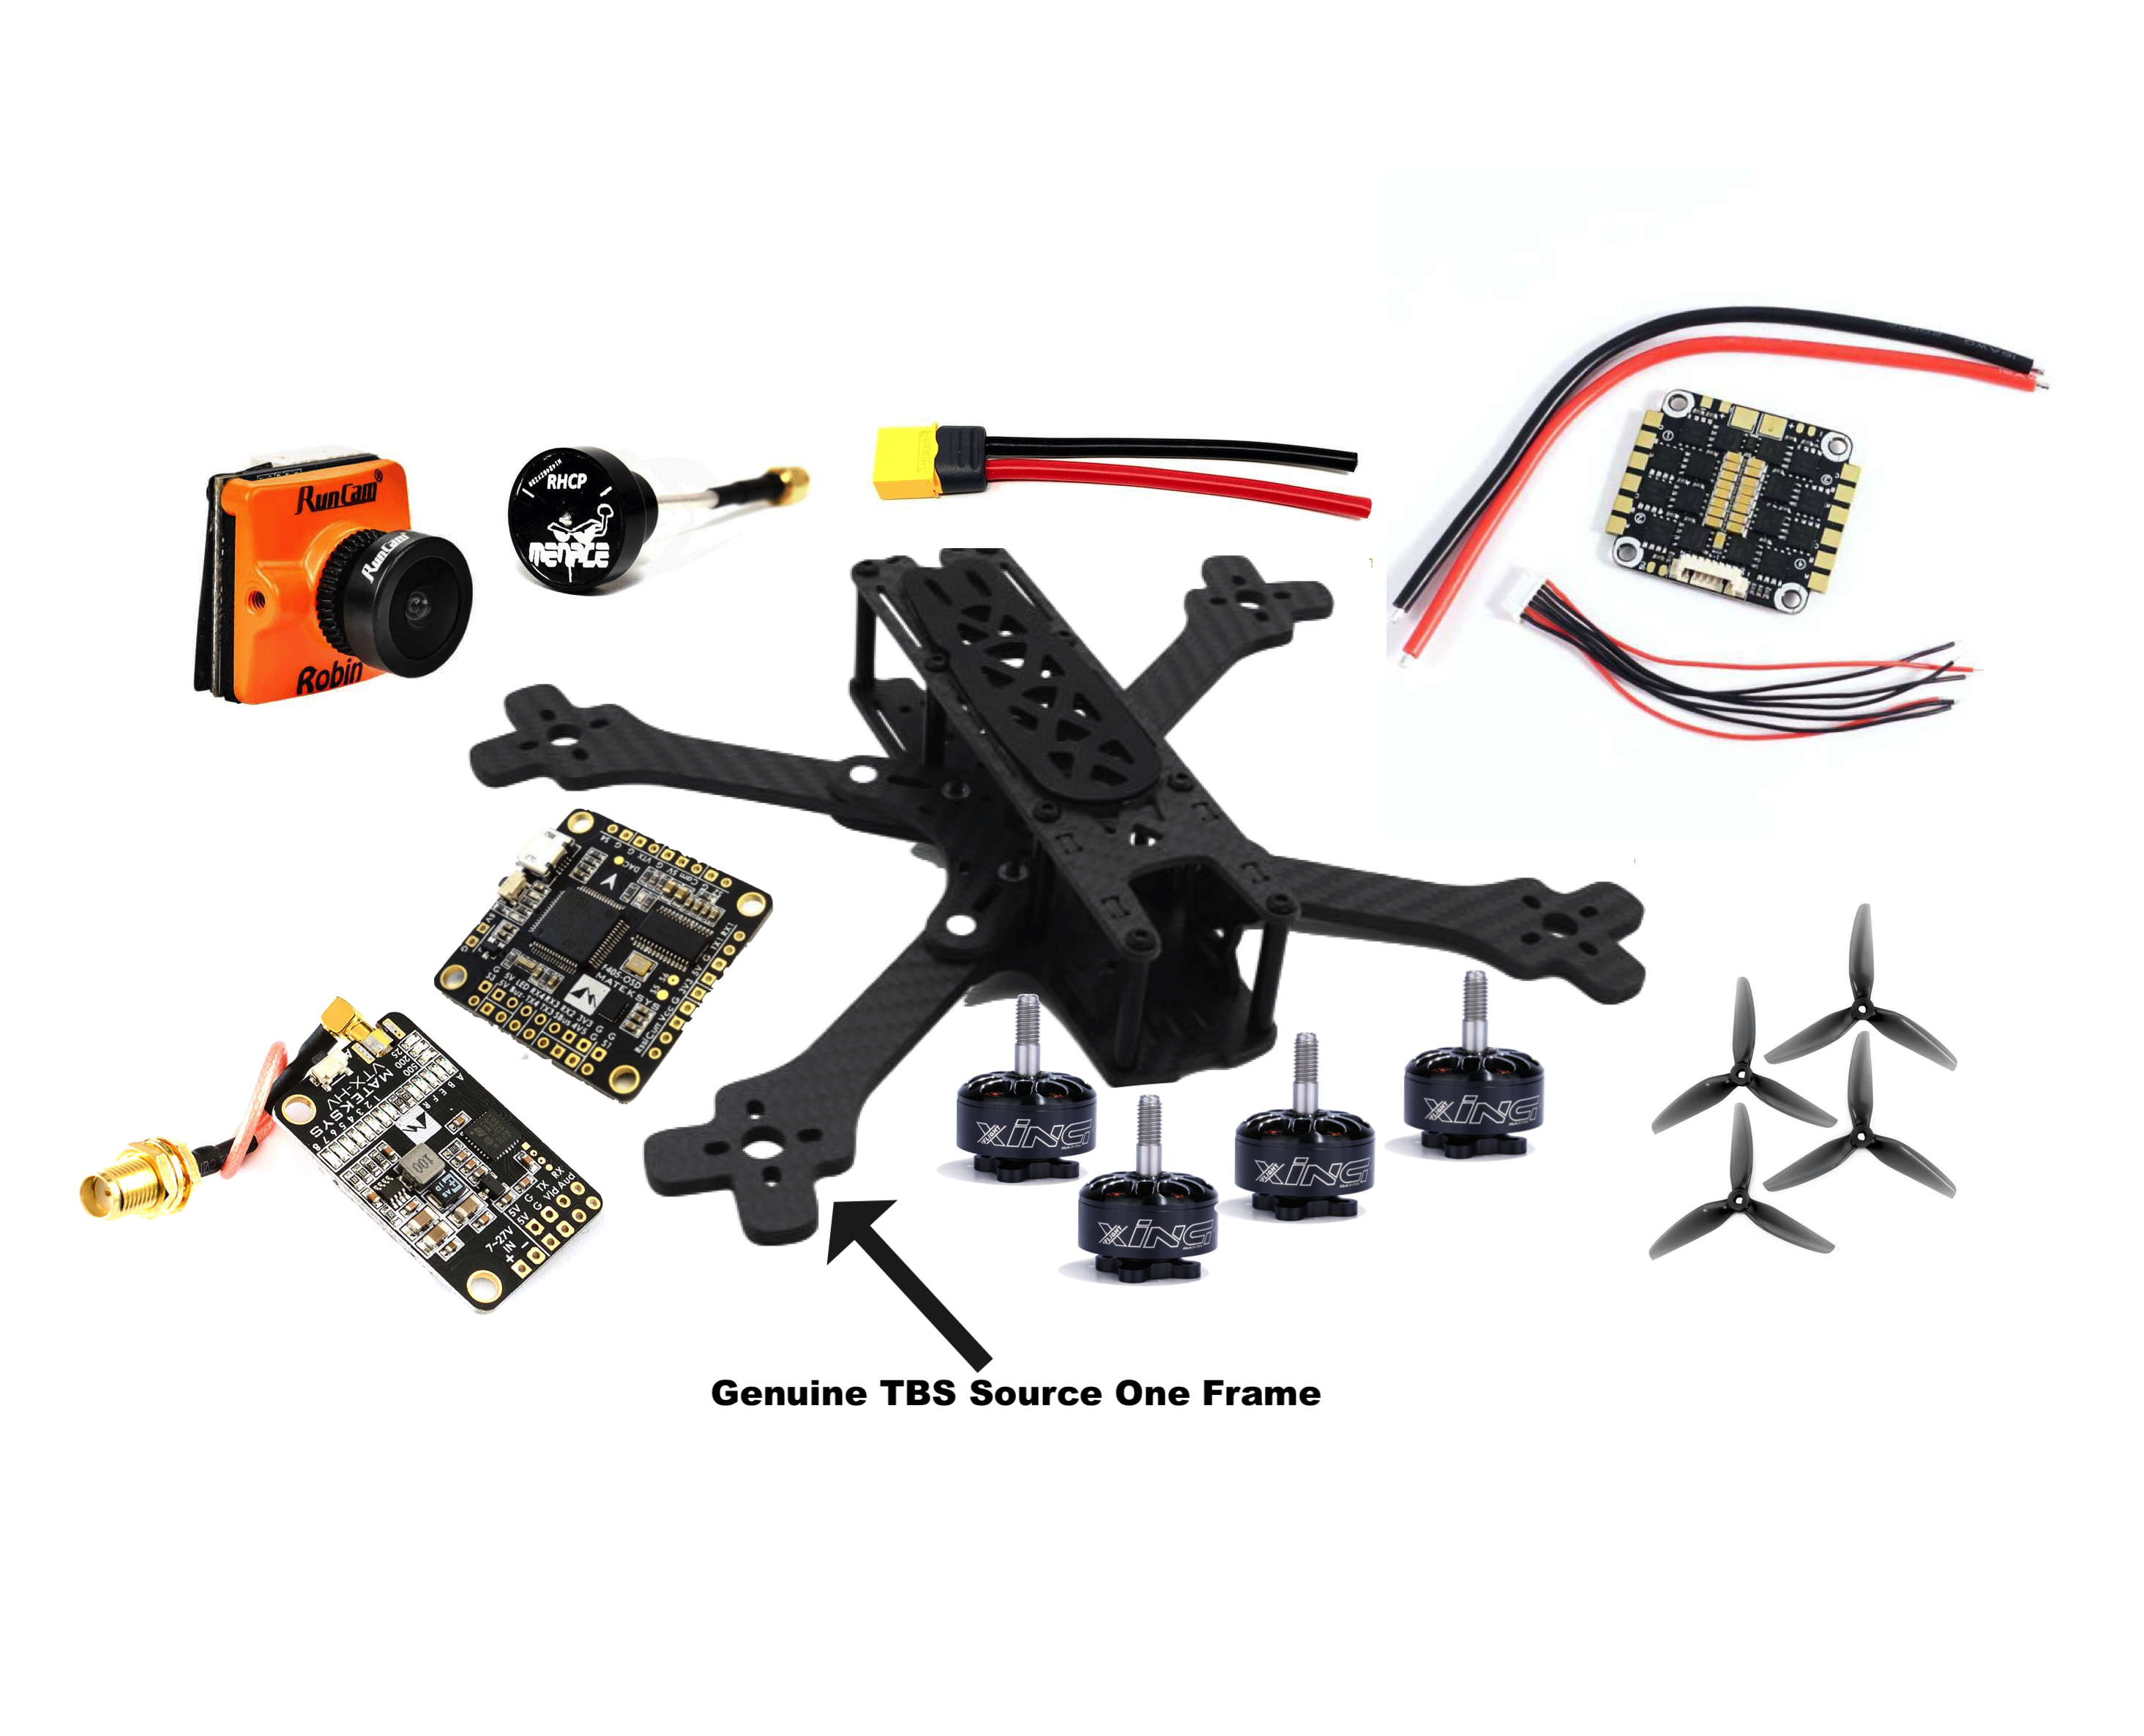 Build your own FPVSource Quadcopter